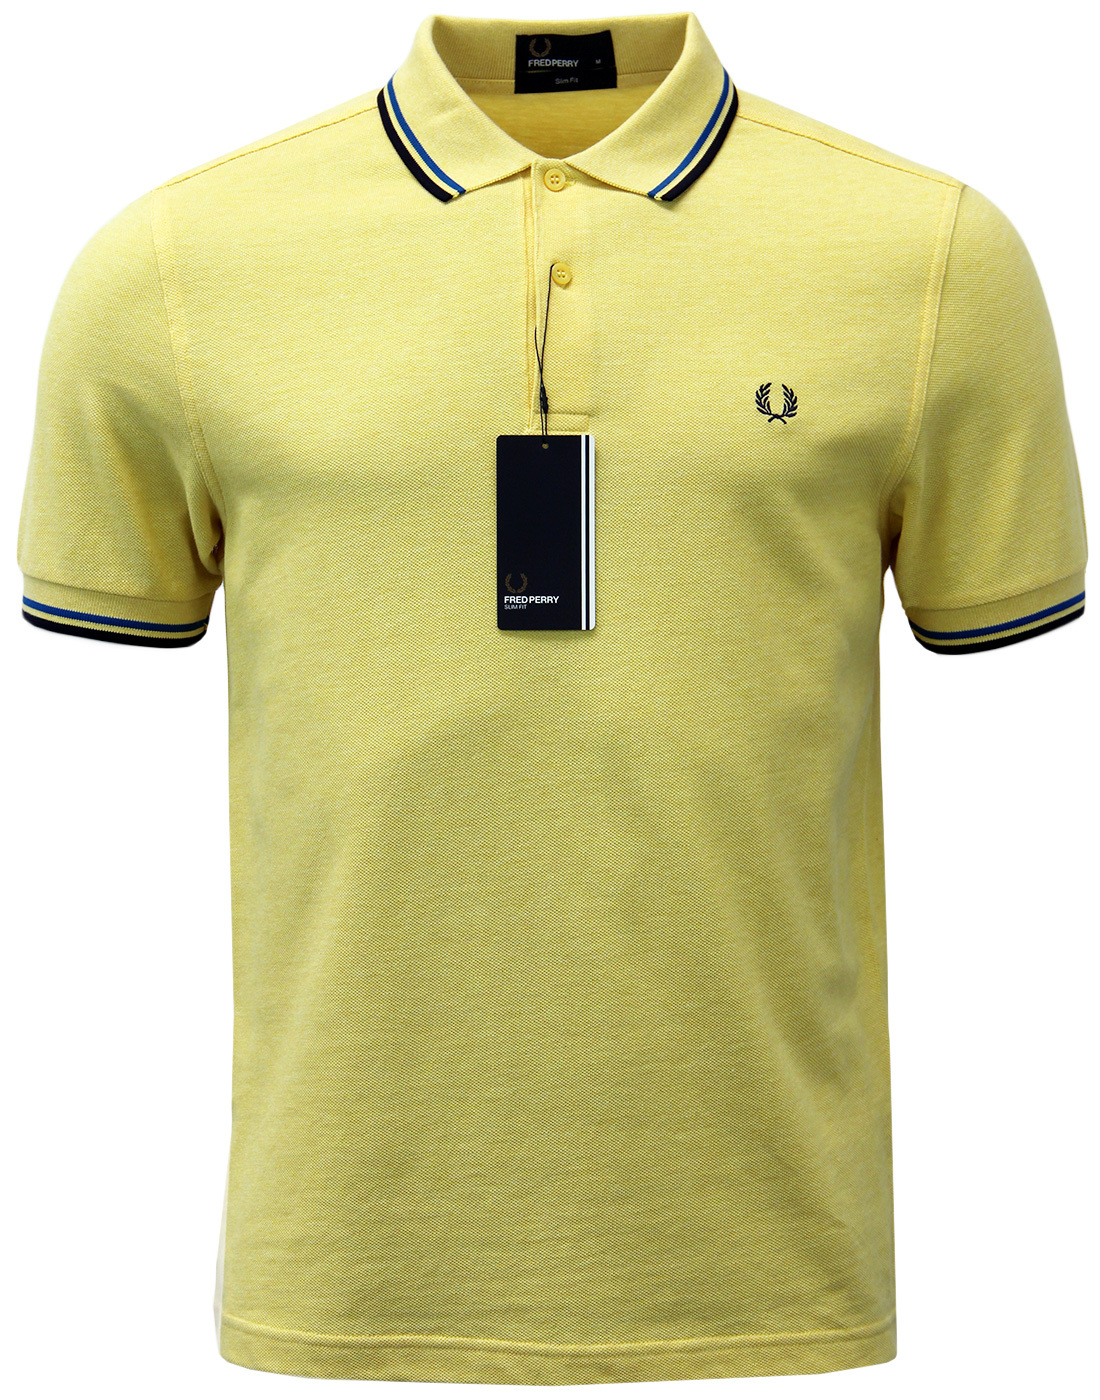 FRED PERRY M3600 Mod Twin Tipped Polo Shirt YELLOW